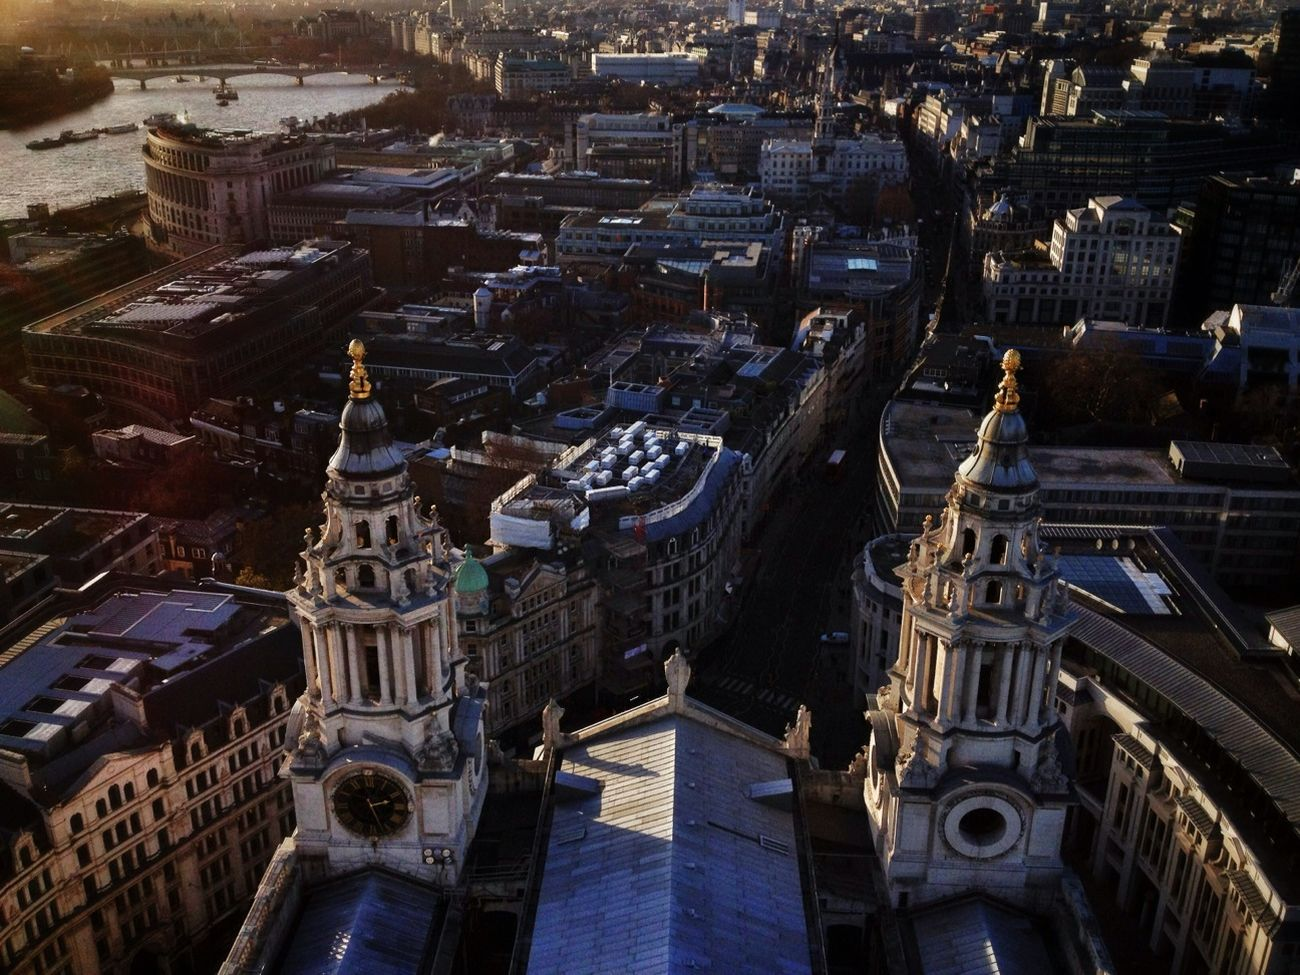 View to the west of London from the Golden Gallery at St Paul's Cathedral